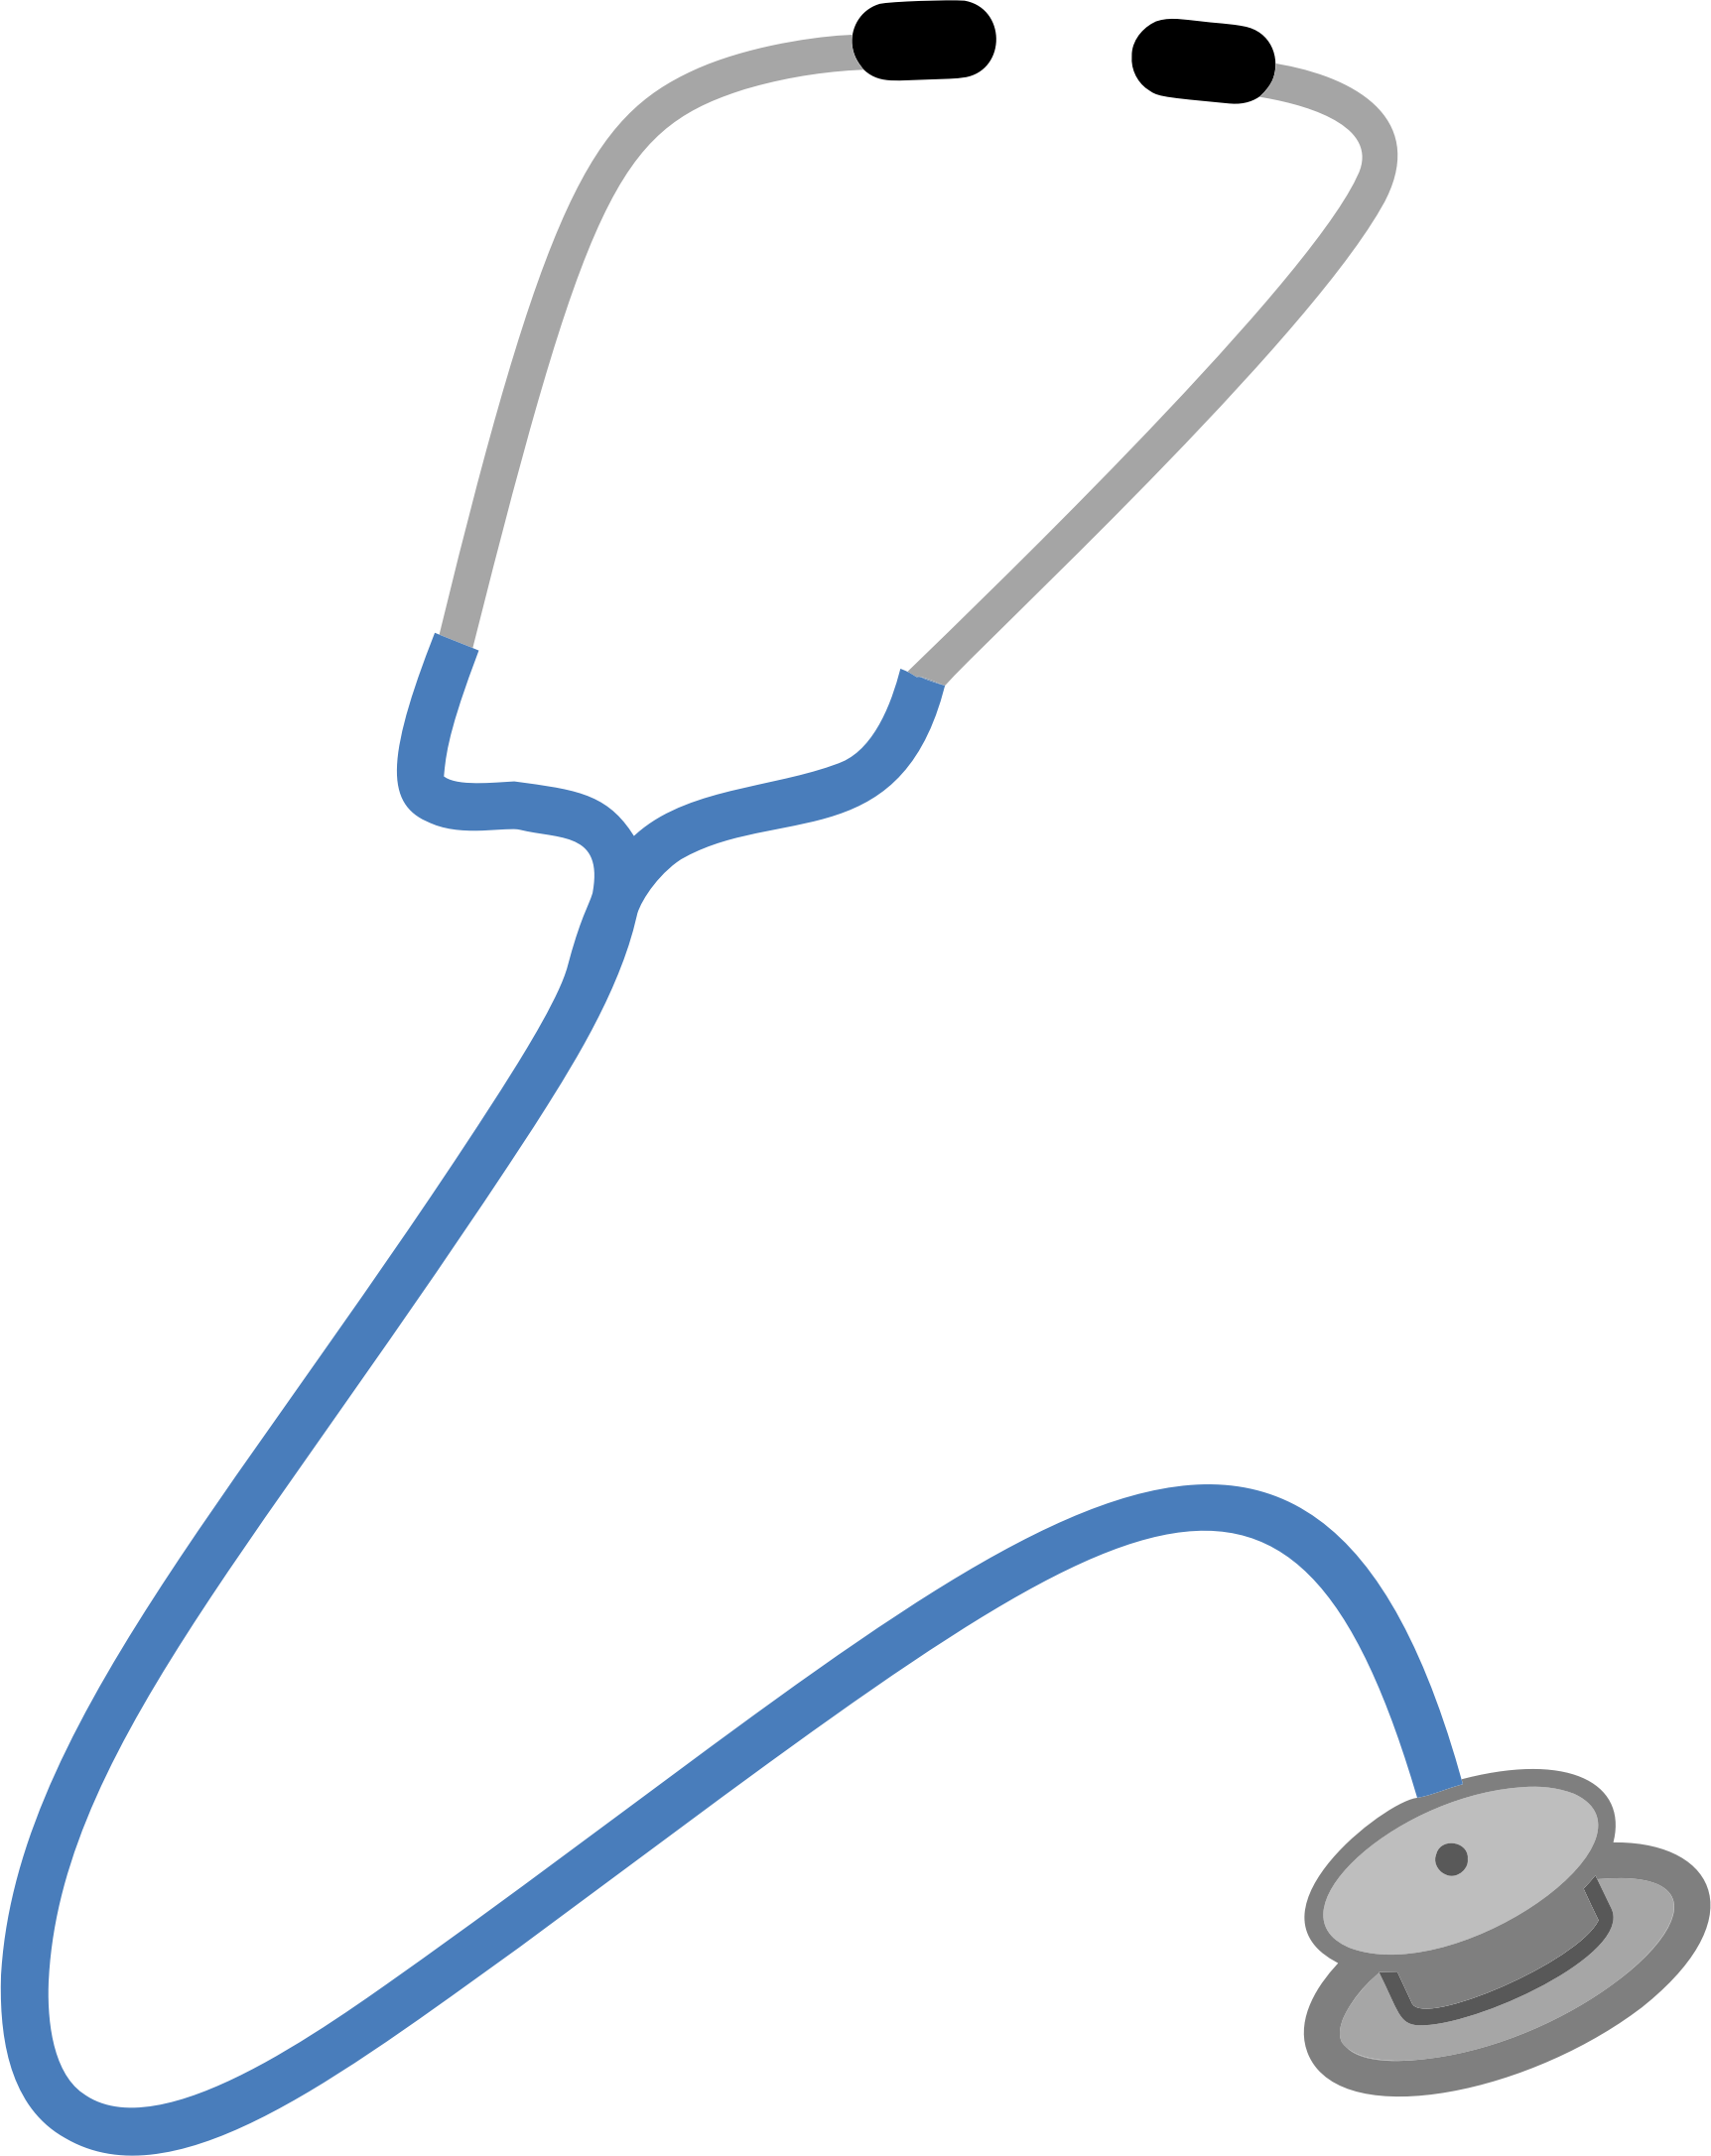 Stethoscope by GDJ